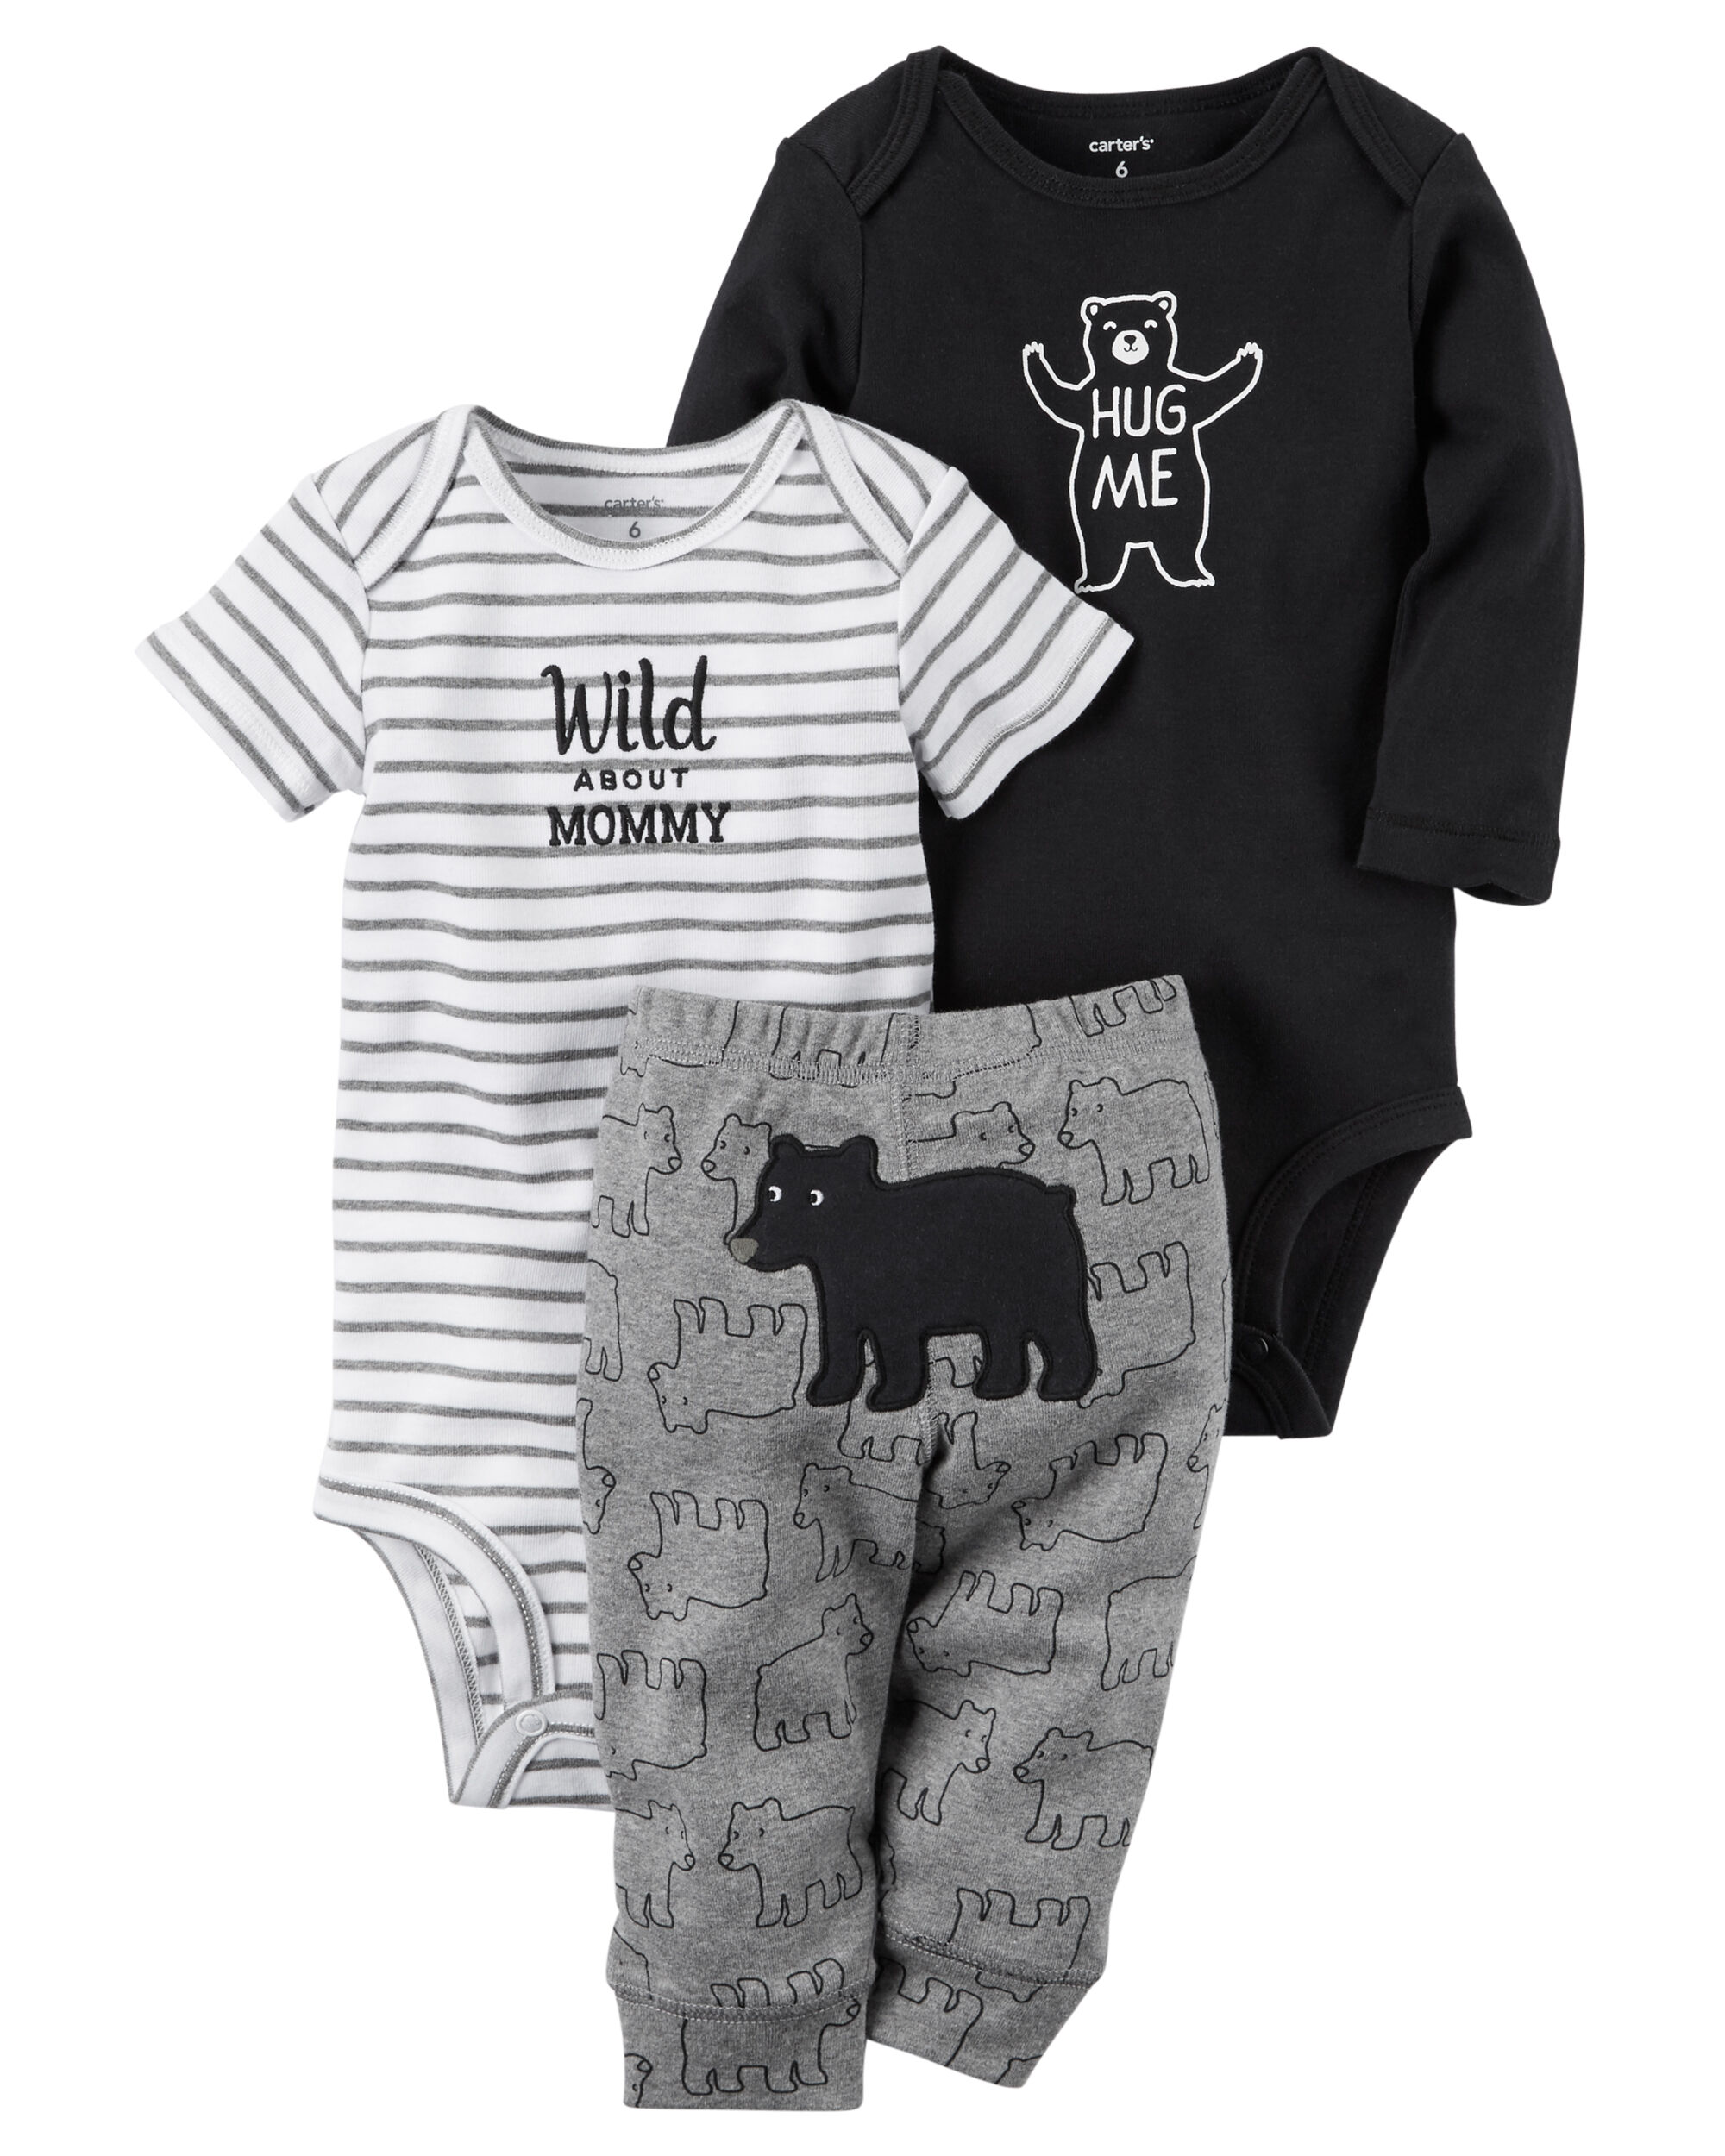 Newborn clothing stores near me